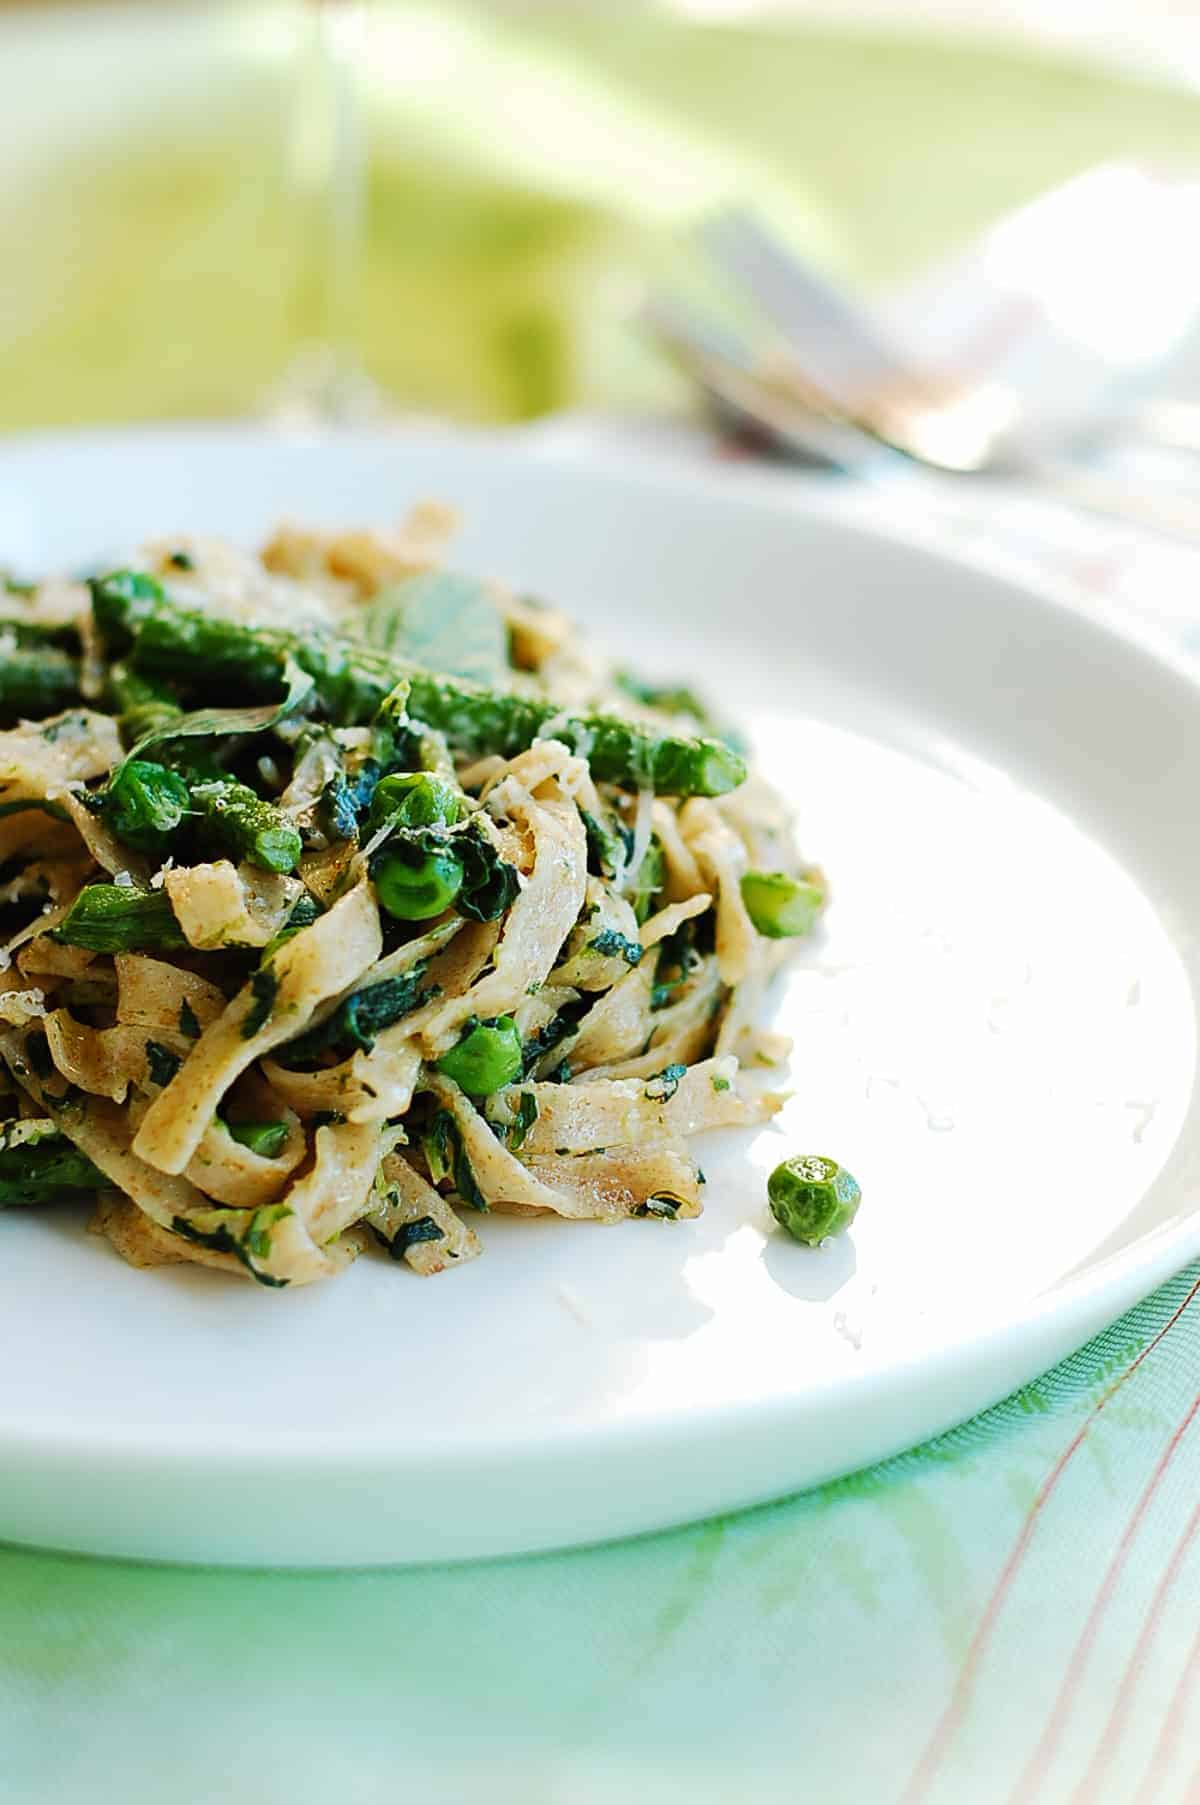 a serve of pasta tossed with greens